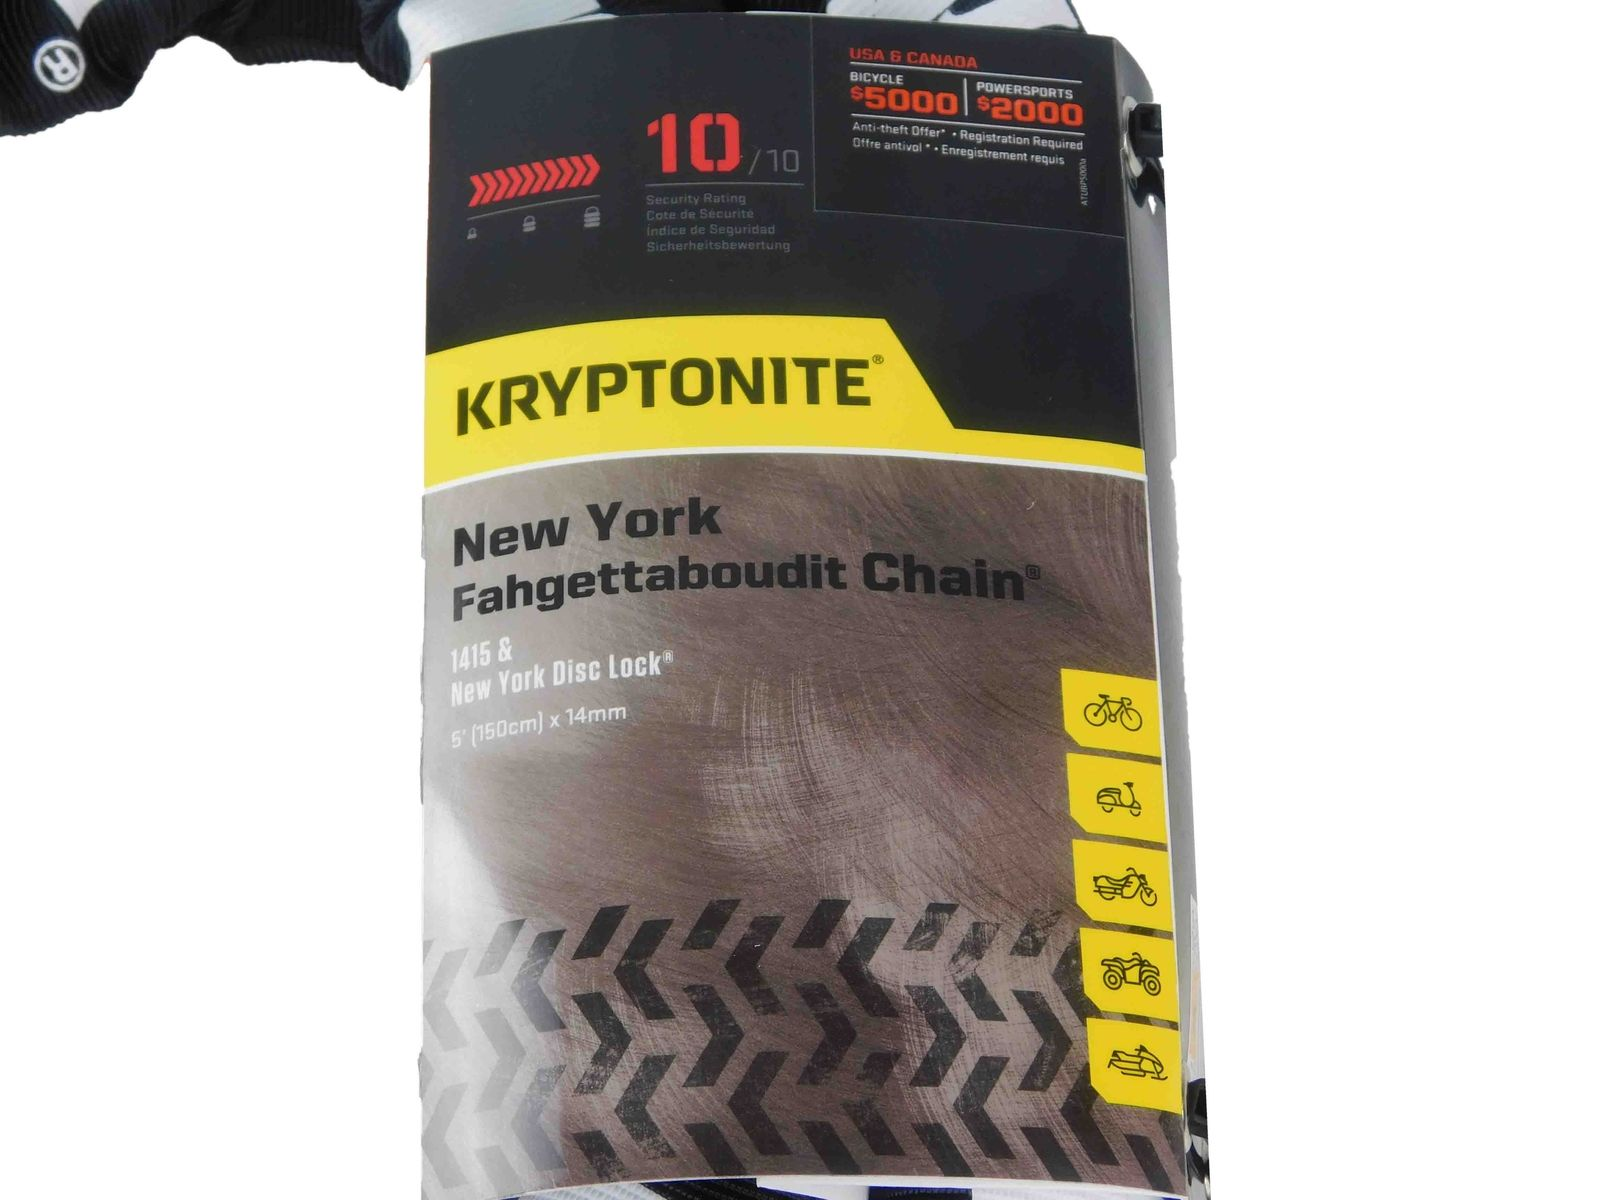 Kryptonite-New-York-Fahgettaboudit-1415-Chain-w-NY-Disc-Lock-5-image-4